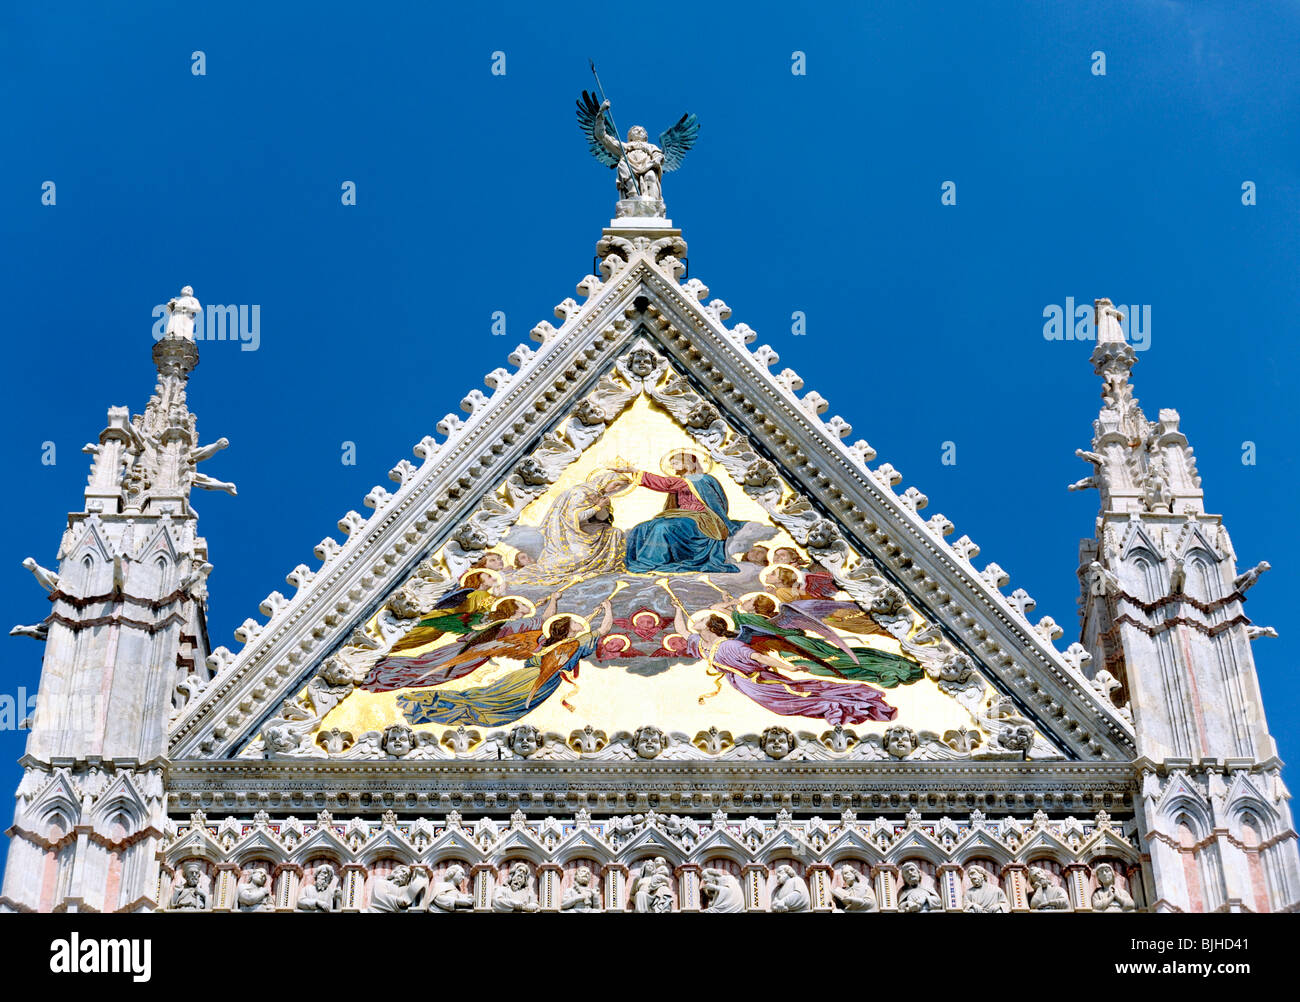 Tympanum on the main façade of Sienna Cathedral, Tuscany, Italy - Stock Image